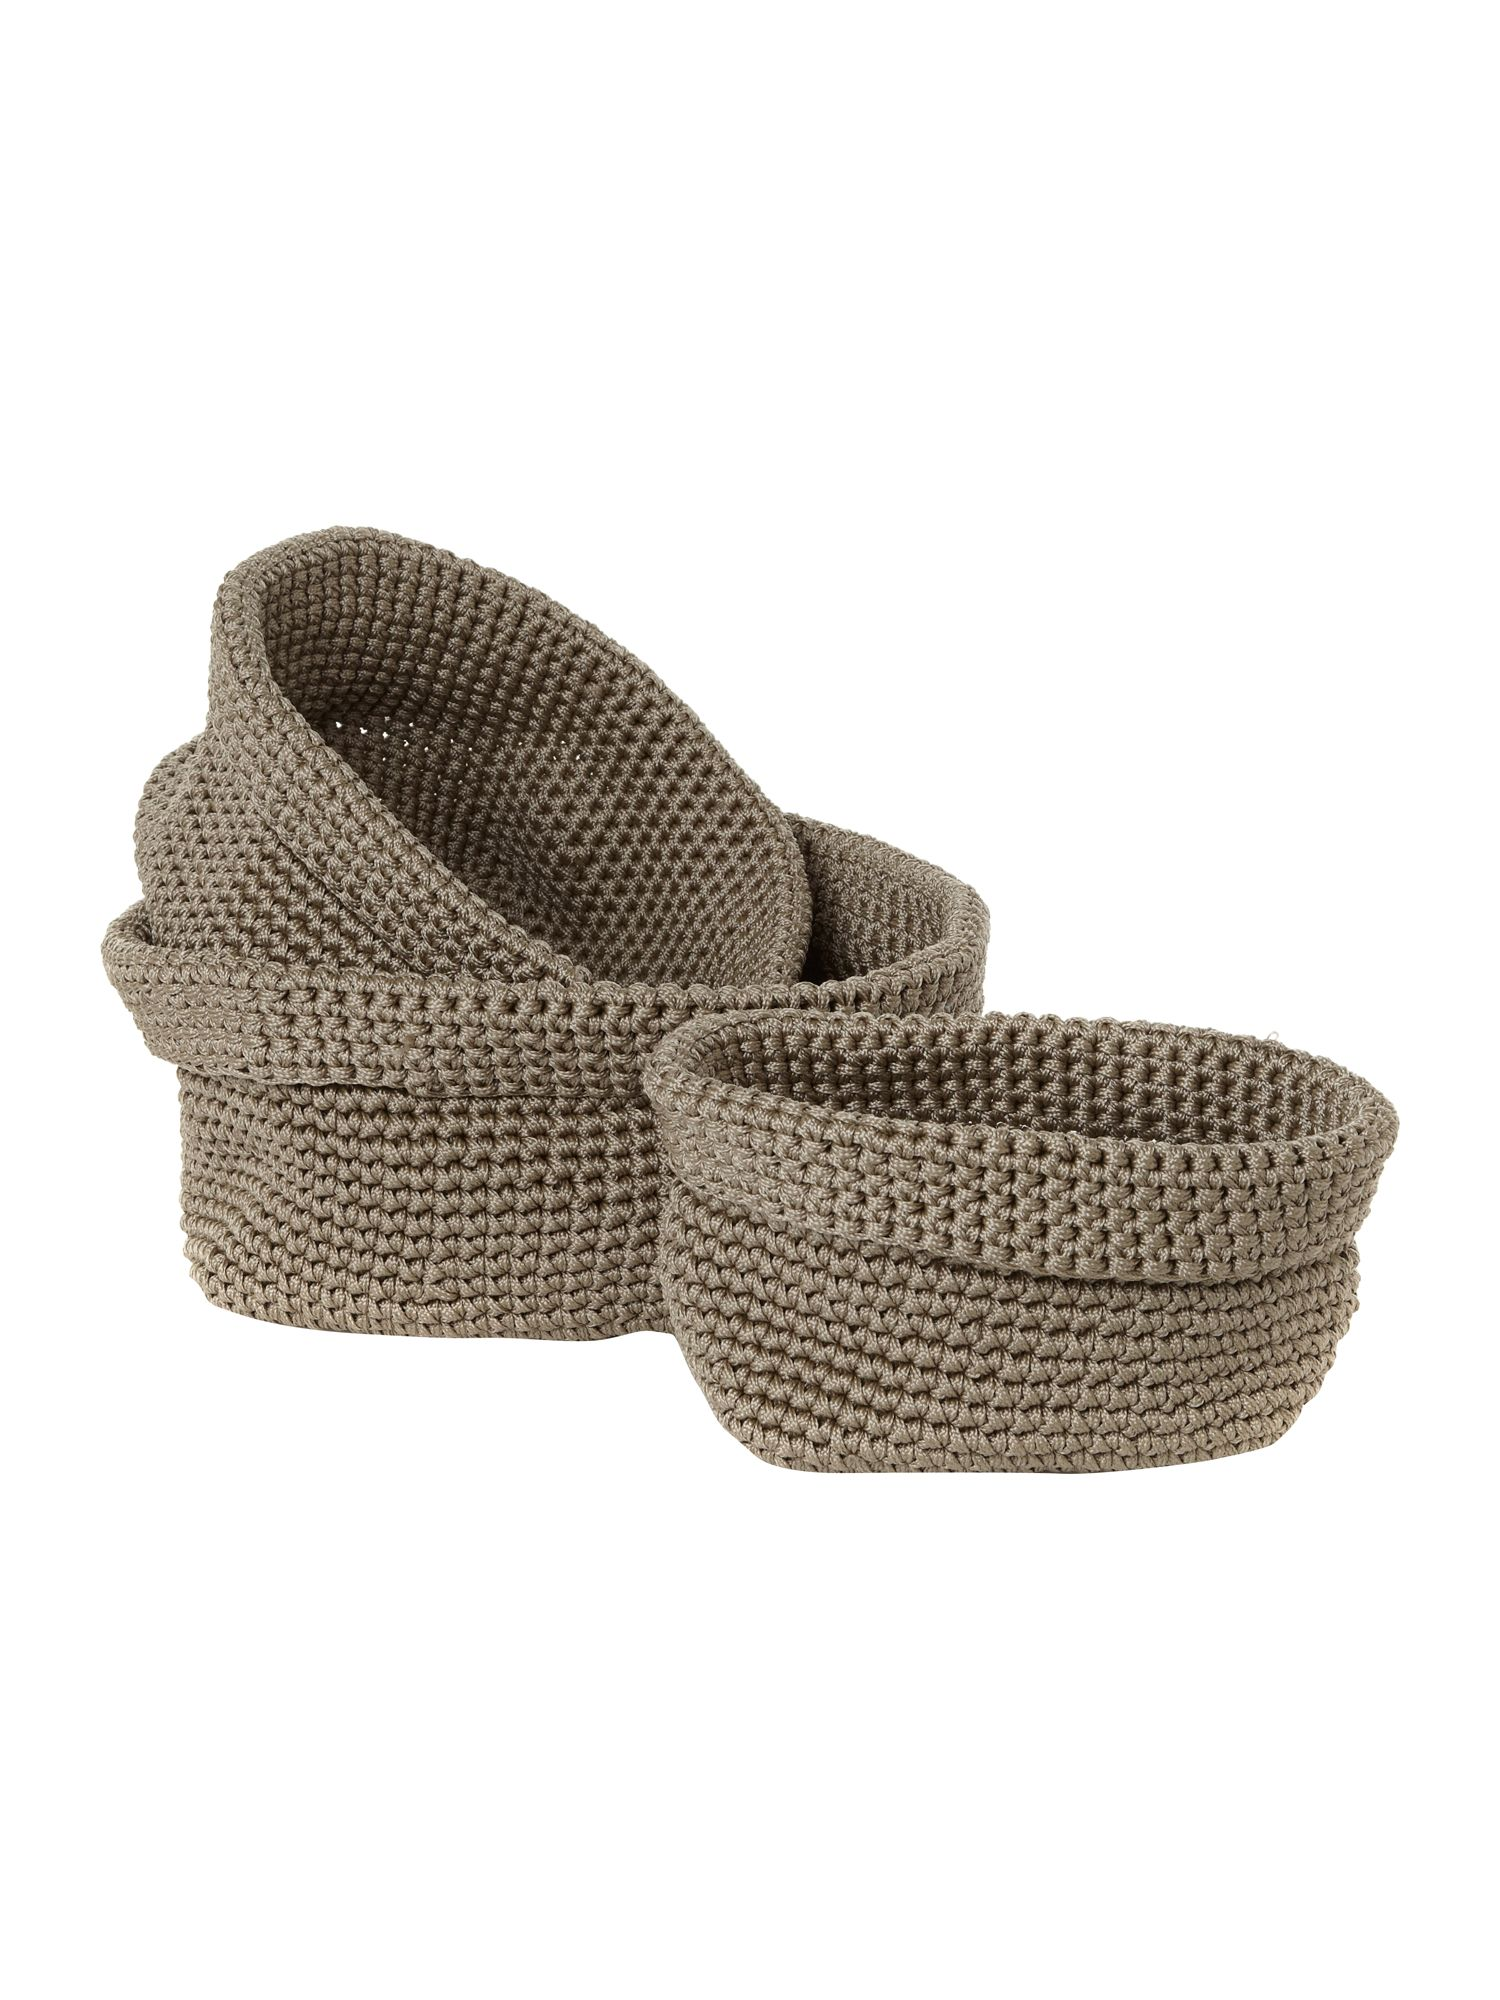 Set of 3 rope crochet baskets